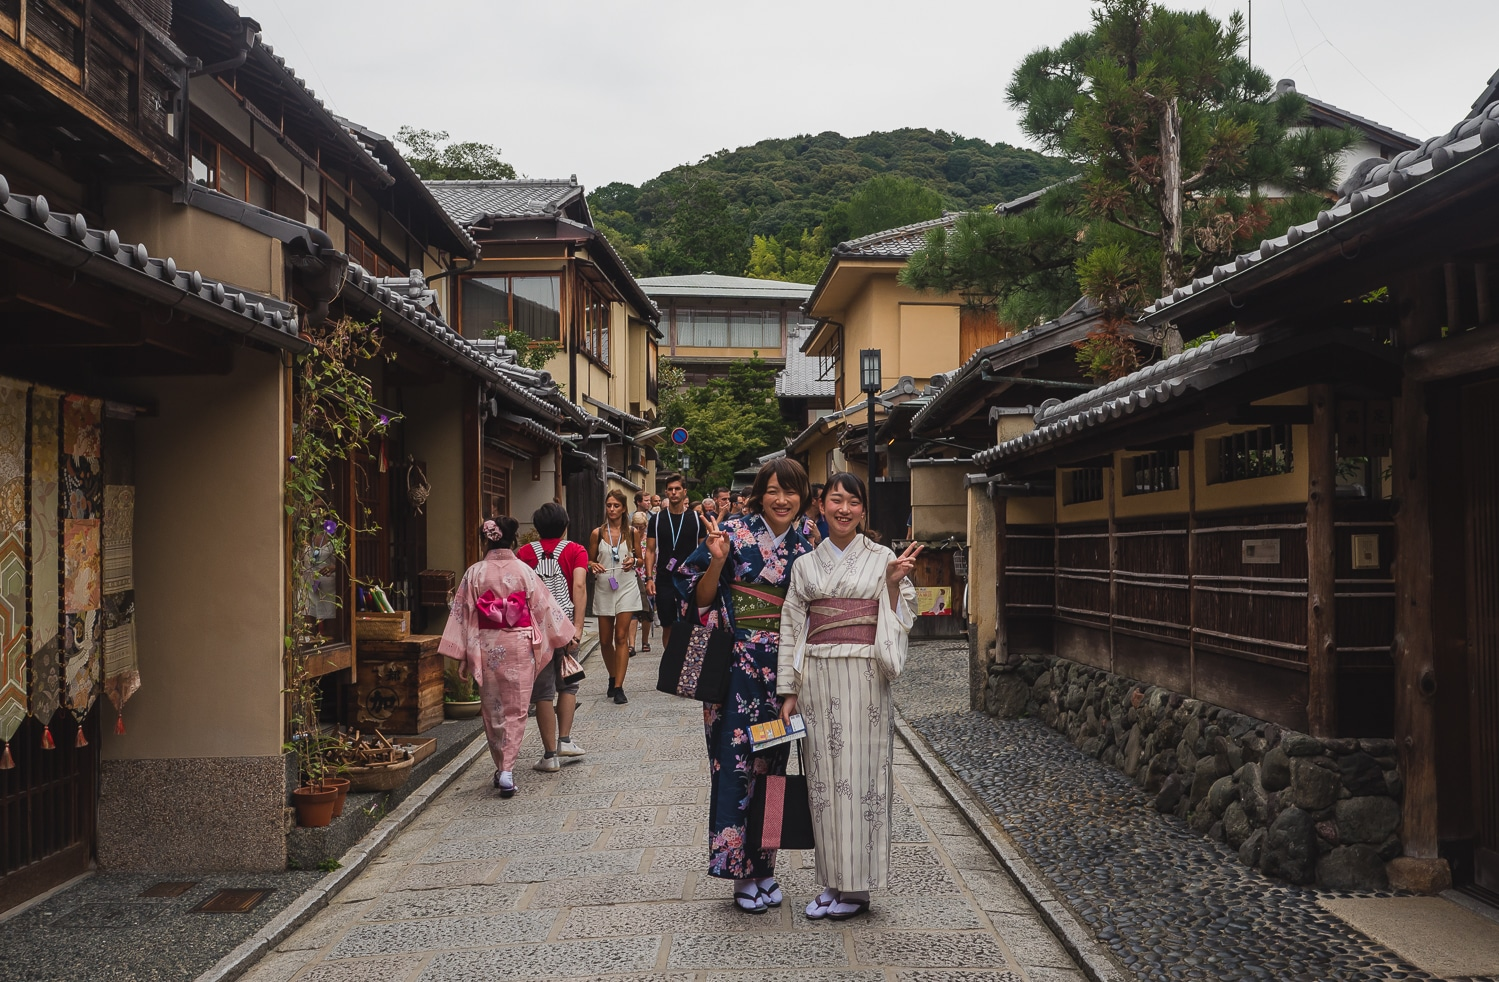 Kyoto, Vivre le Japon, authentique, que faire à Kyoto